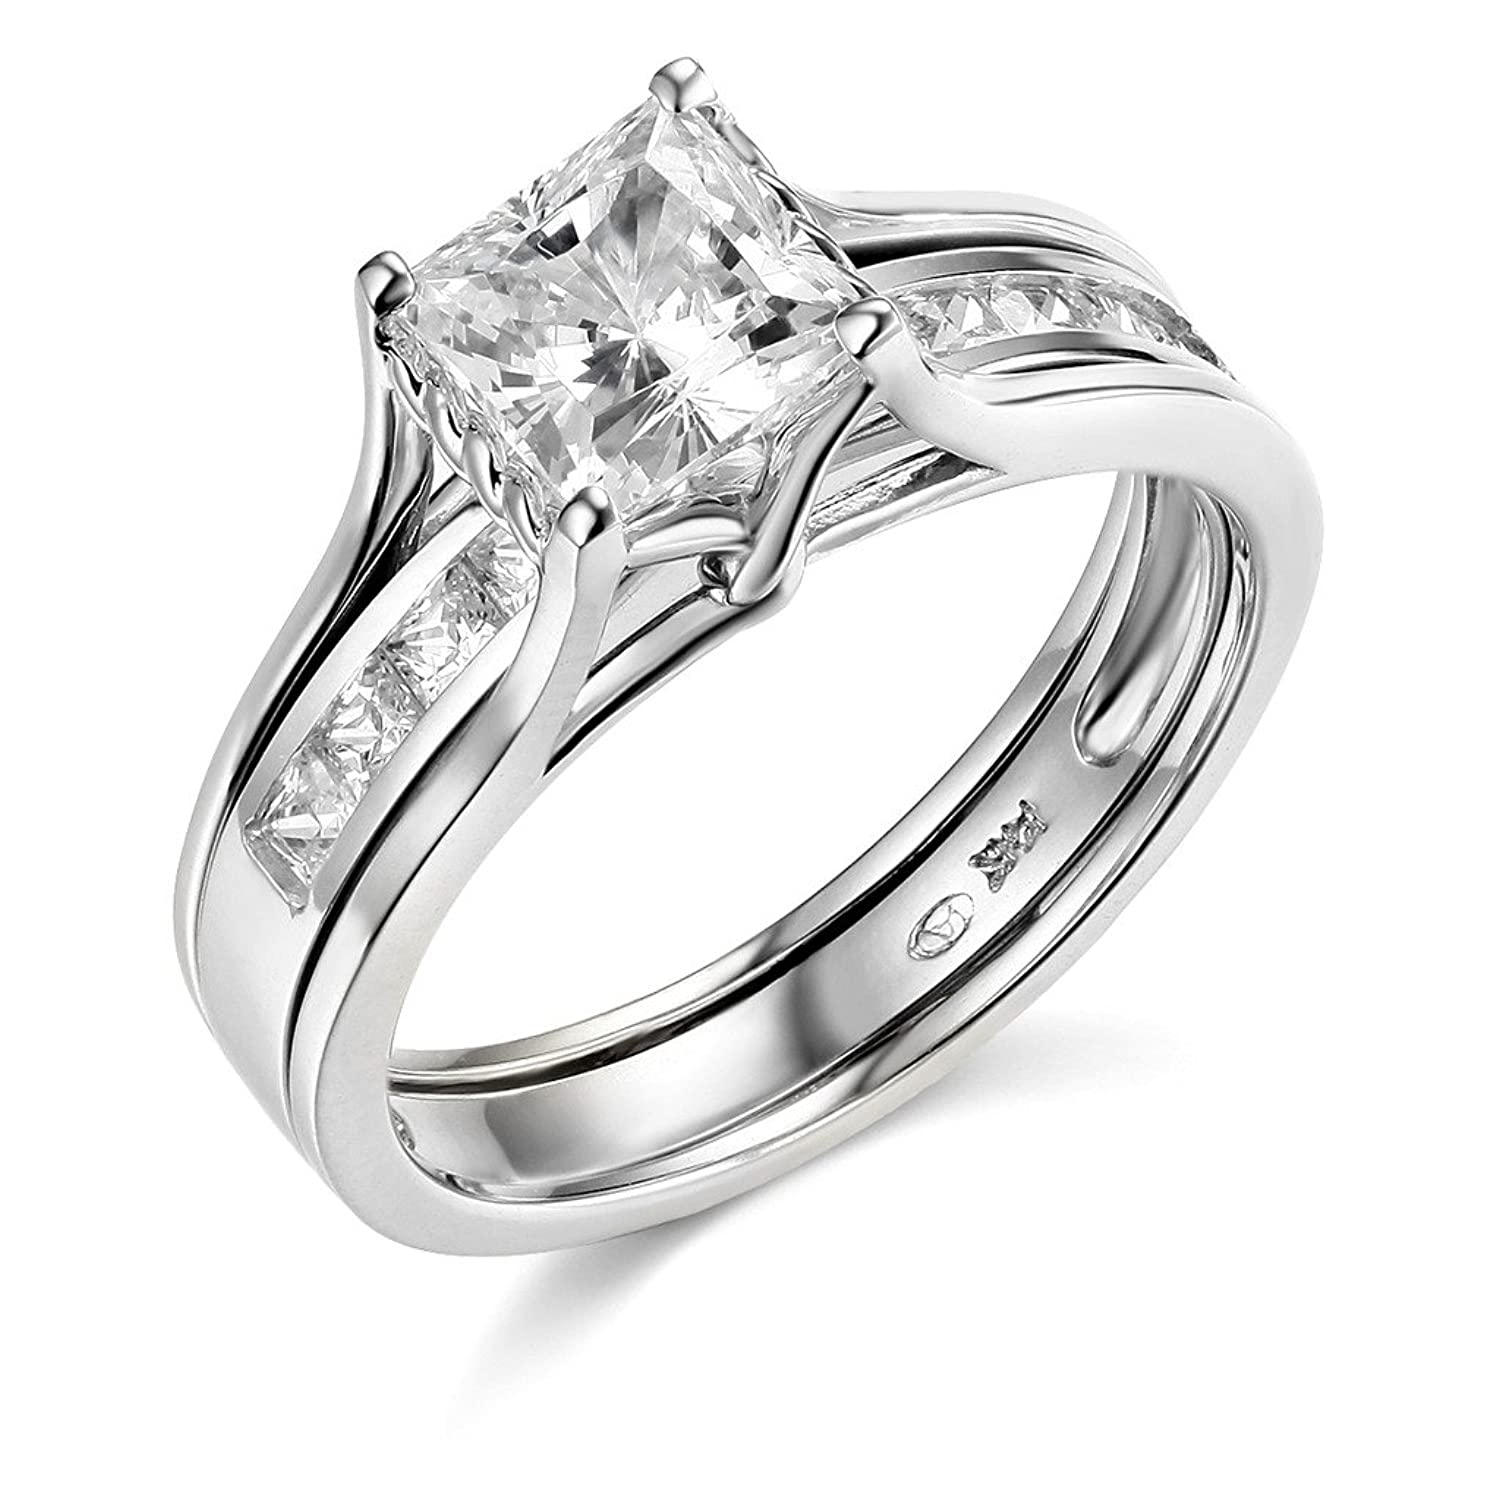 Charmant 14k Yellow OR White Gold SOLID Princess Square Engagement Ring U0026 Wedding  Band Set | Amazon.com